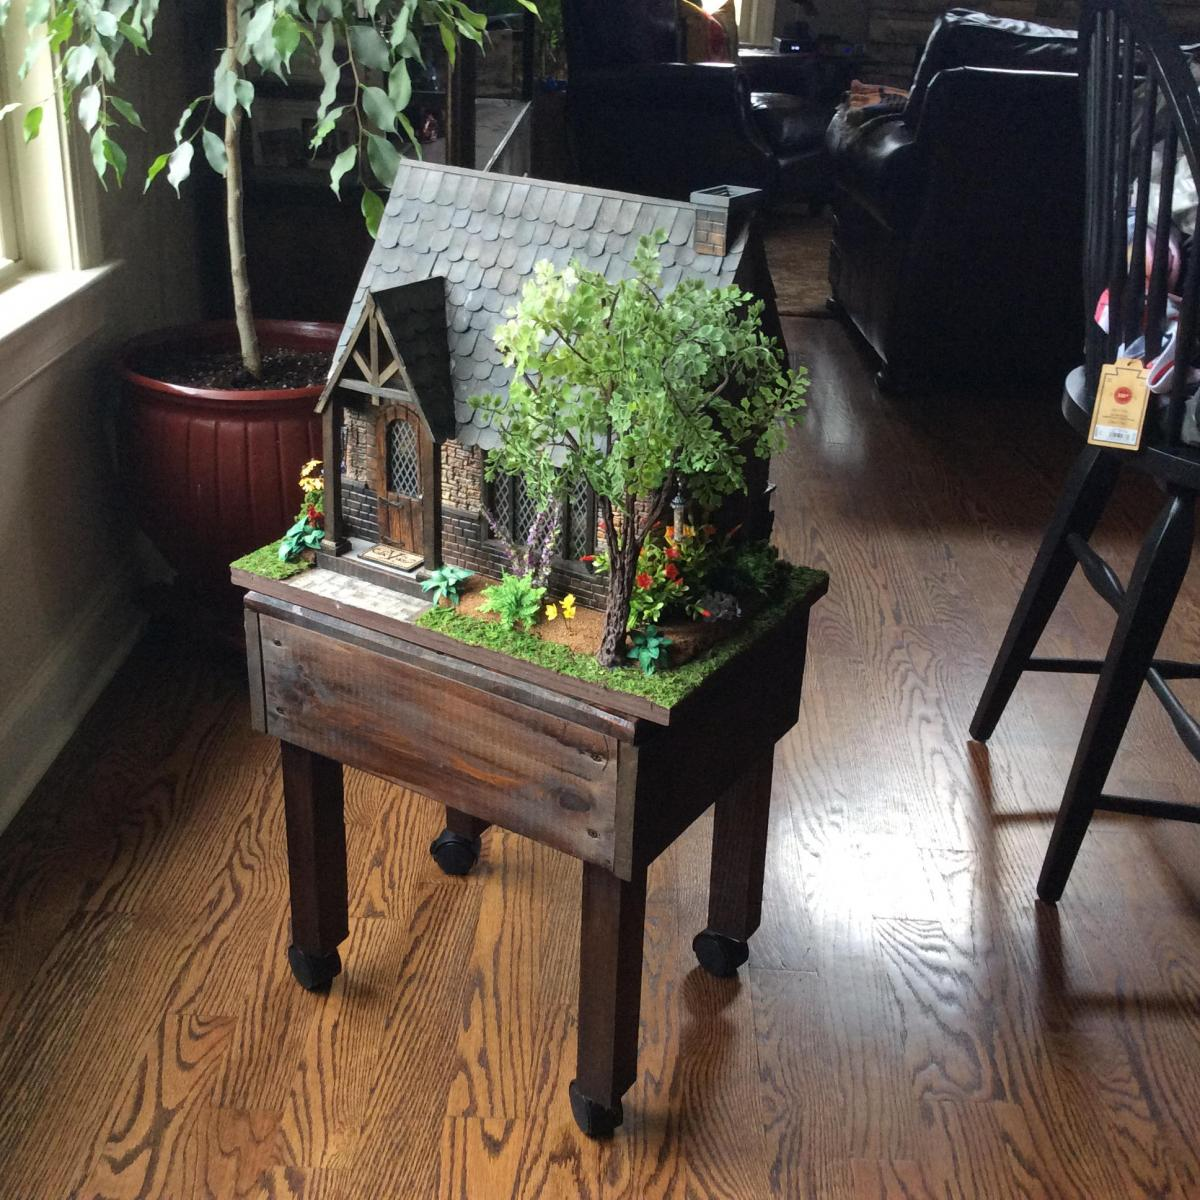 Rustic table to display my Sugarplum